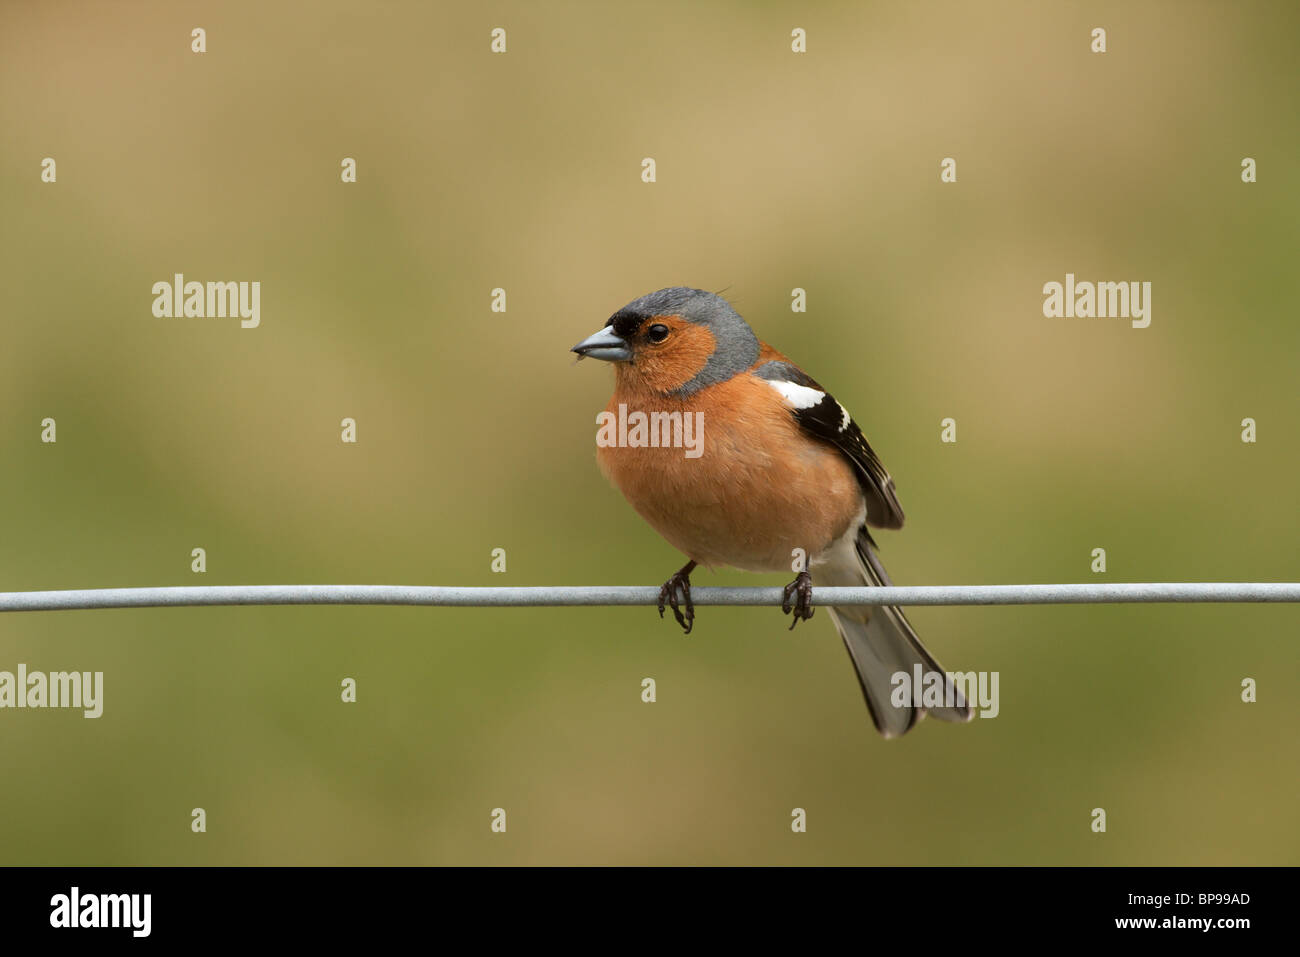 A male chaffinch sitting on a single strand of wire. - Stock Image